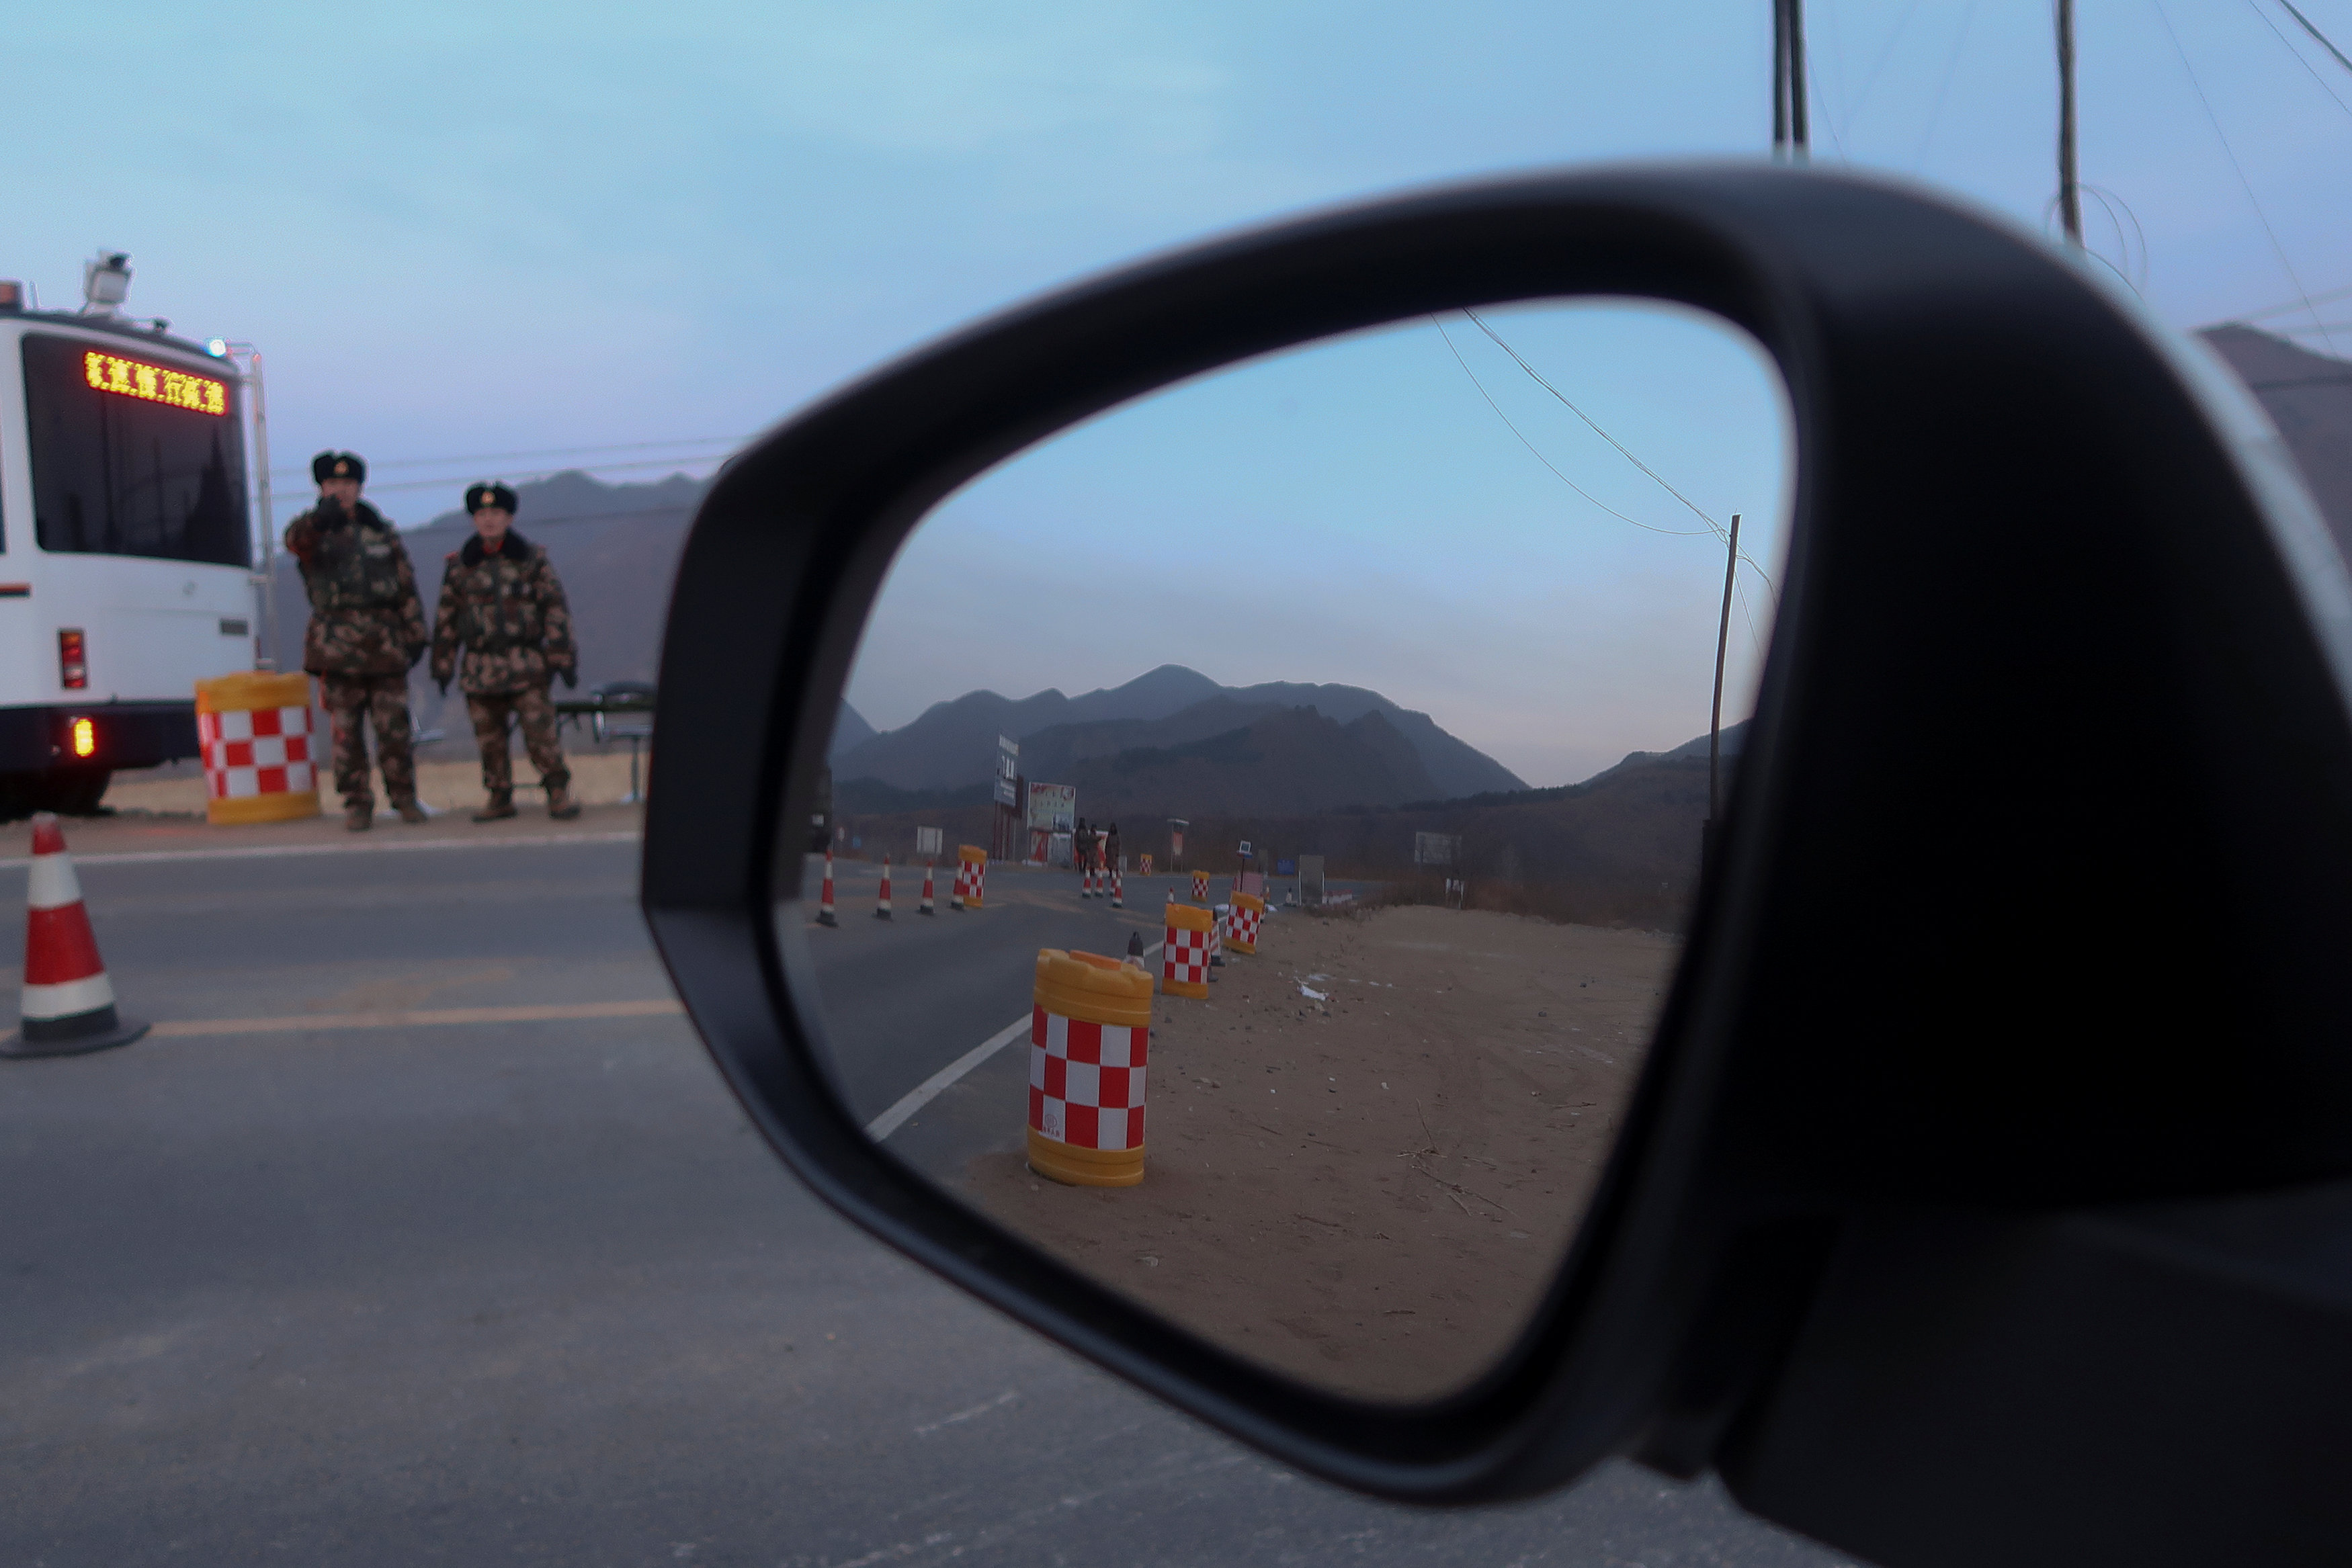 Policemen control a check point after preventing Reuters reporters from driving through, near the border of China and North Korea, just outside the village of Sanhe, China, November 25, 2017. REUTERS/Damir Sagolj